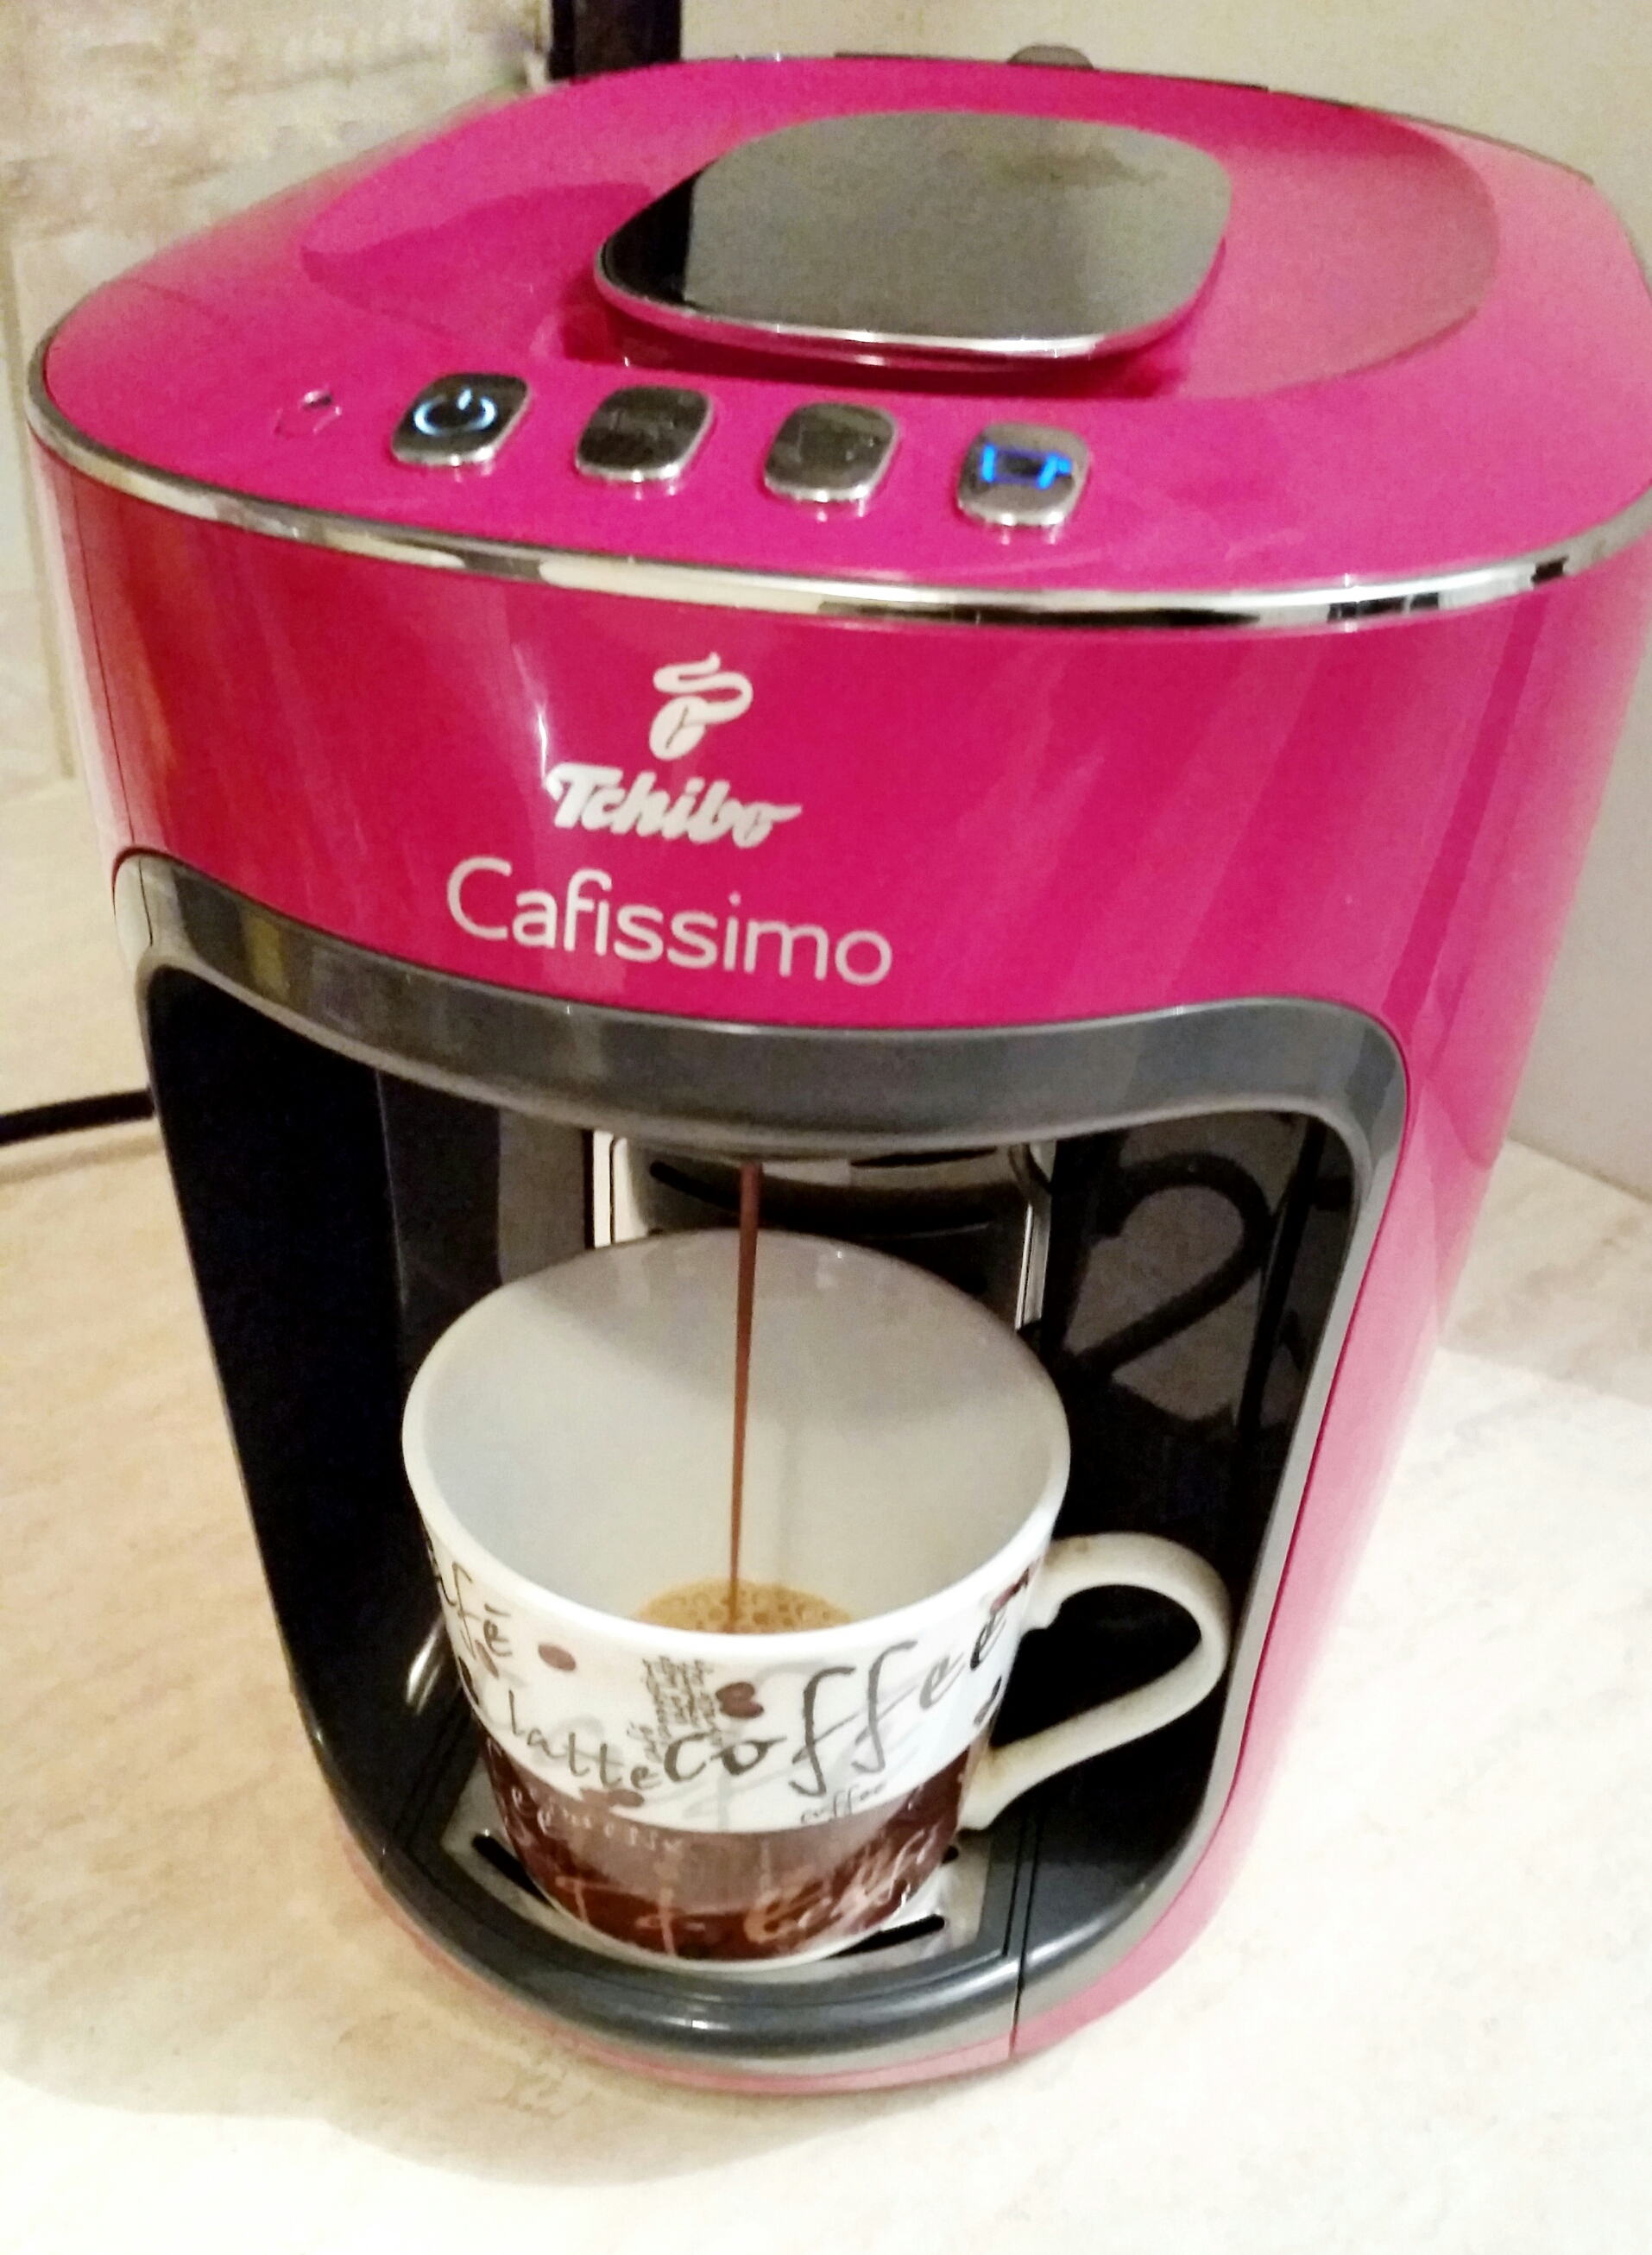 tchibo-cafissimo-mini-espressor-beautyandatwist-may-2017